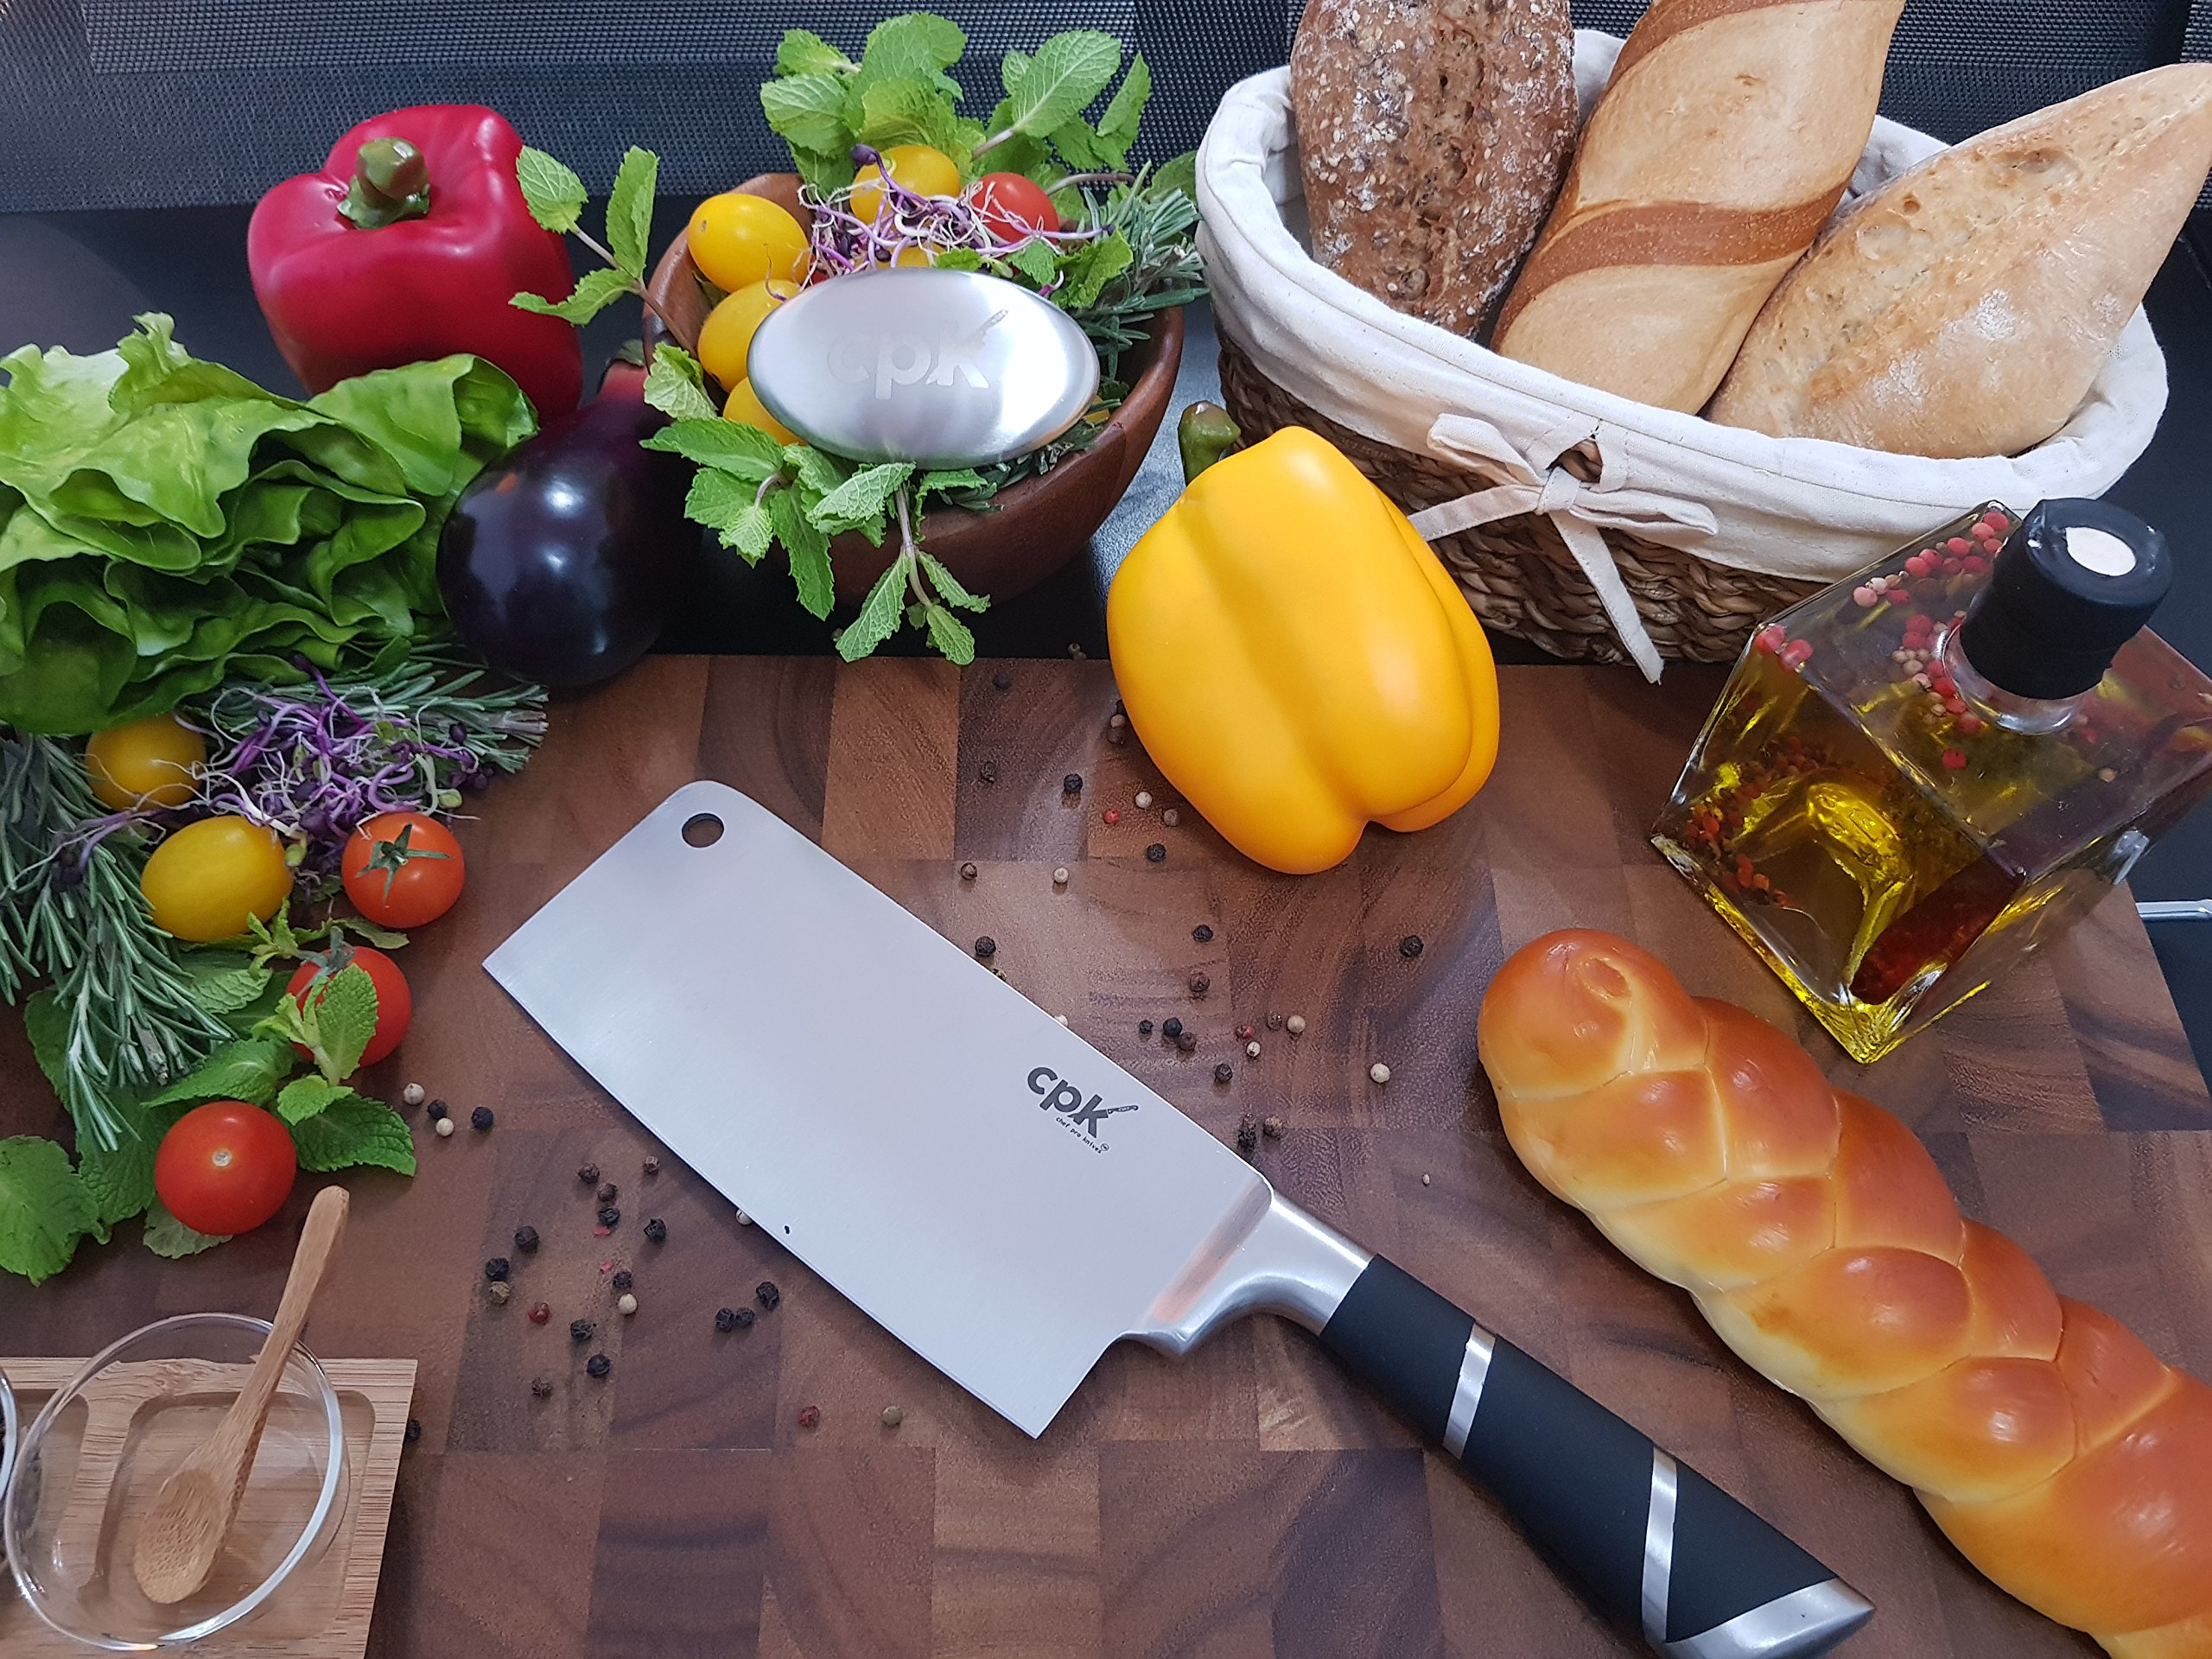 7'' Professional Cleaver Knife Stainless Steel with Ergonomic Handle/Chinese Meat Cleaver/Butcher knife/Chopper Vegetable Cutter BONUS-Metal Soap for Odor Removing all in a Gift Box for Home Kitchen by CPK Elite (Image #4)